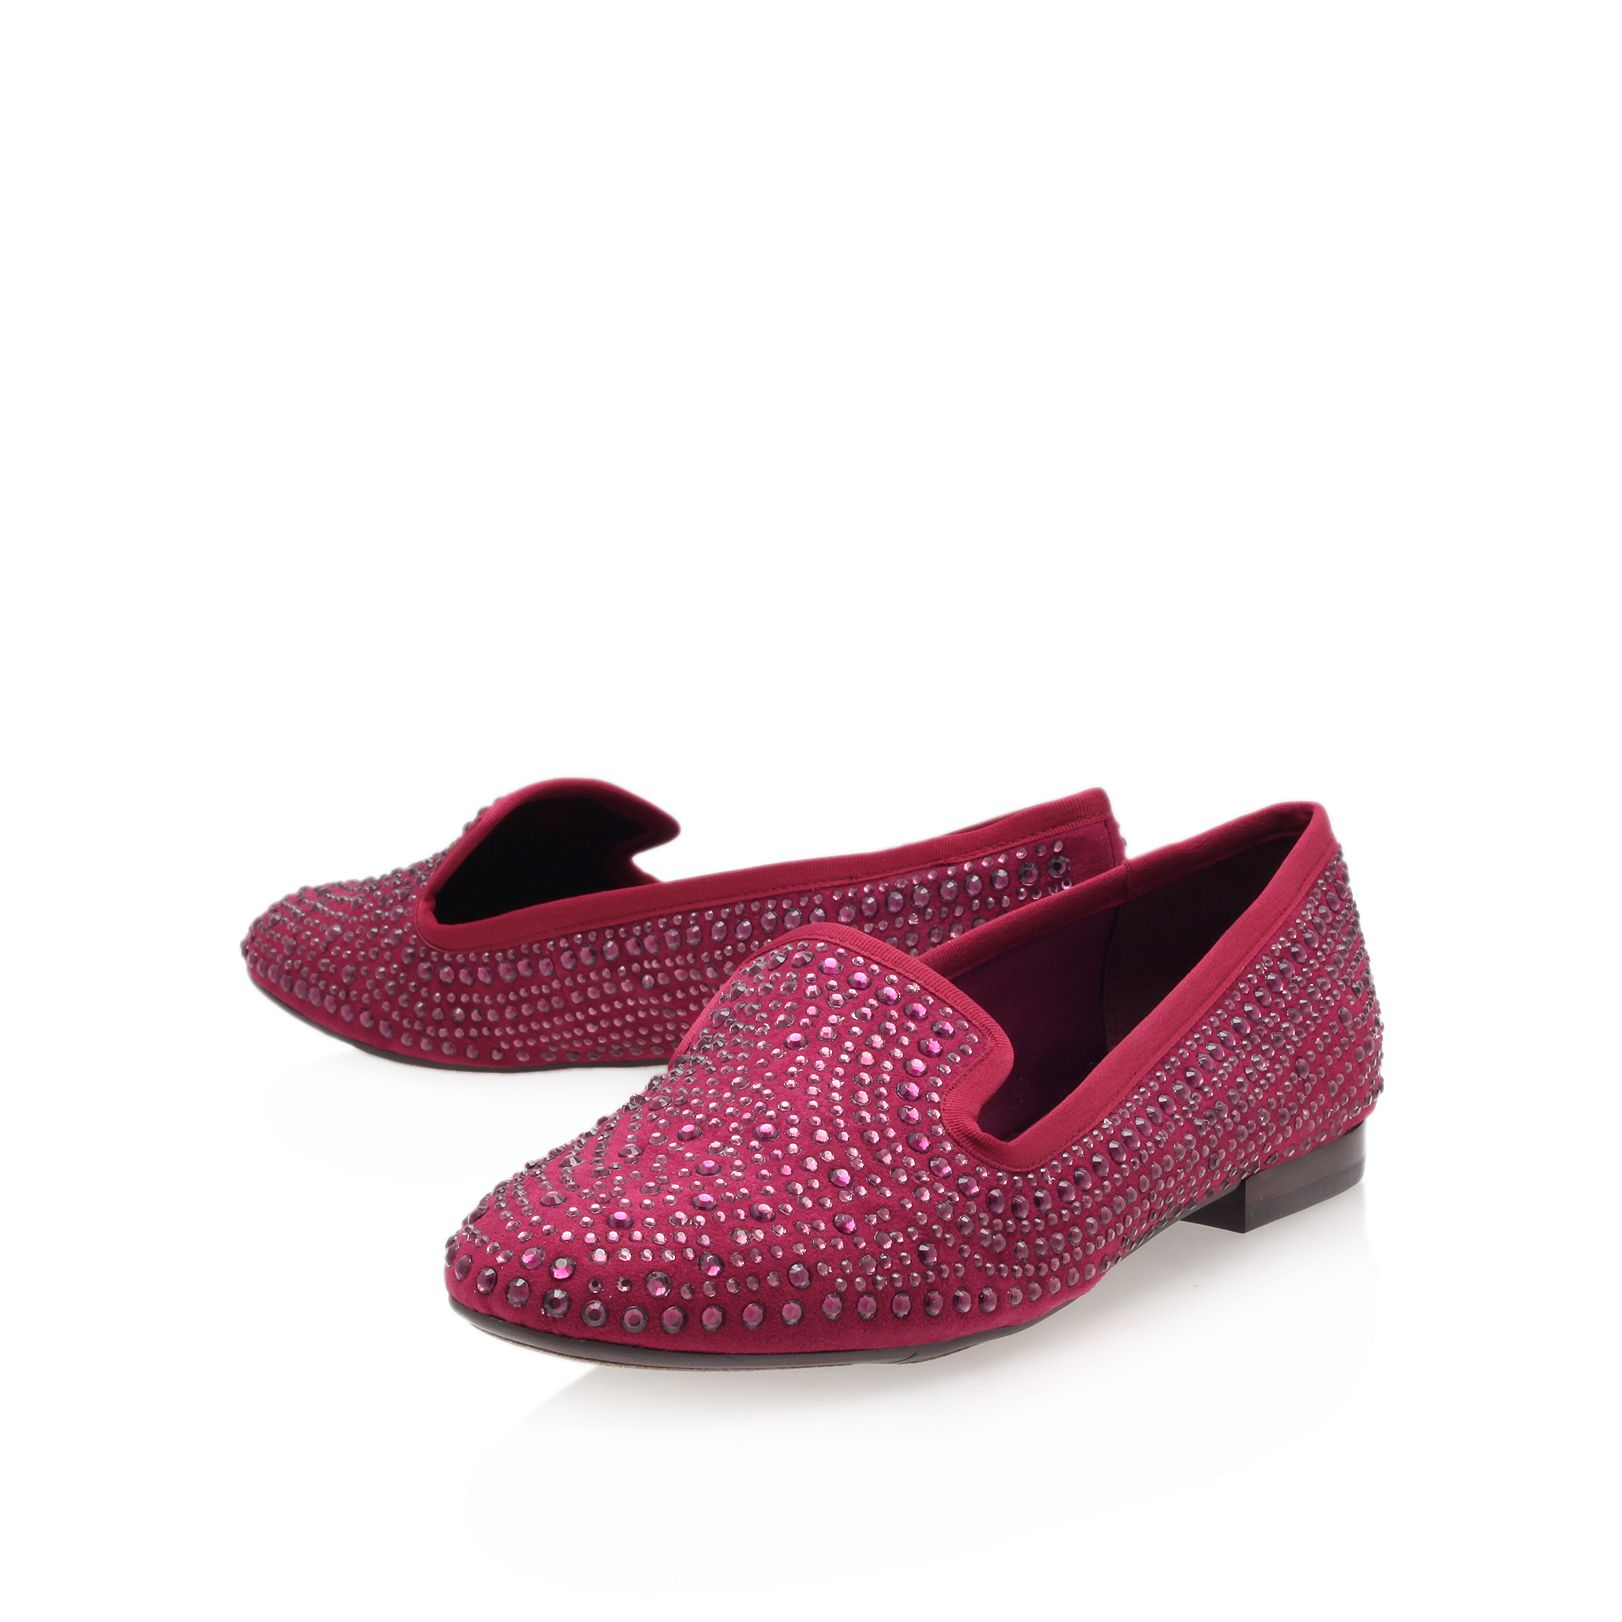 Lovemi flat embellished slipper shoes